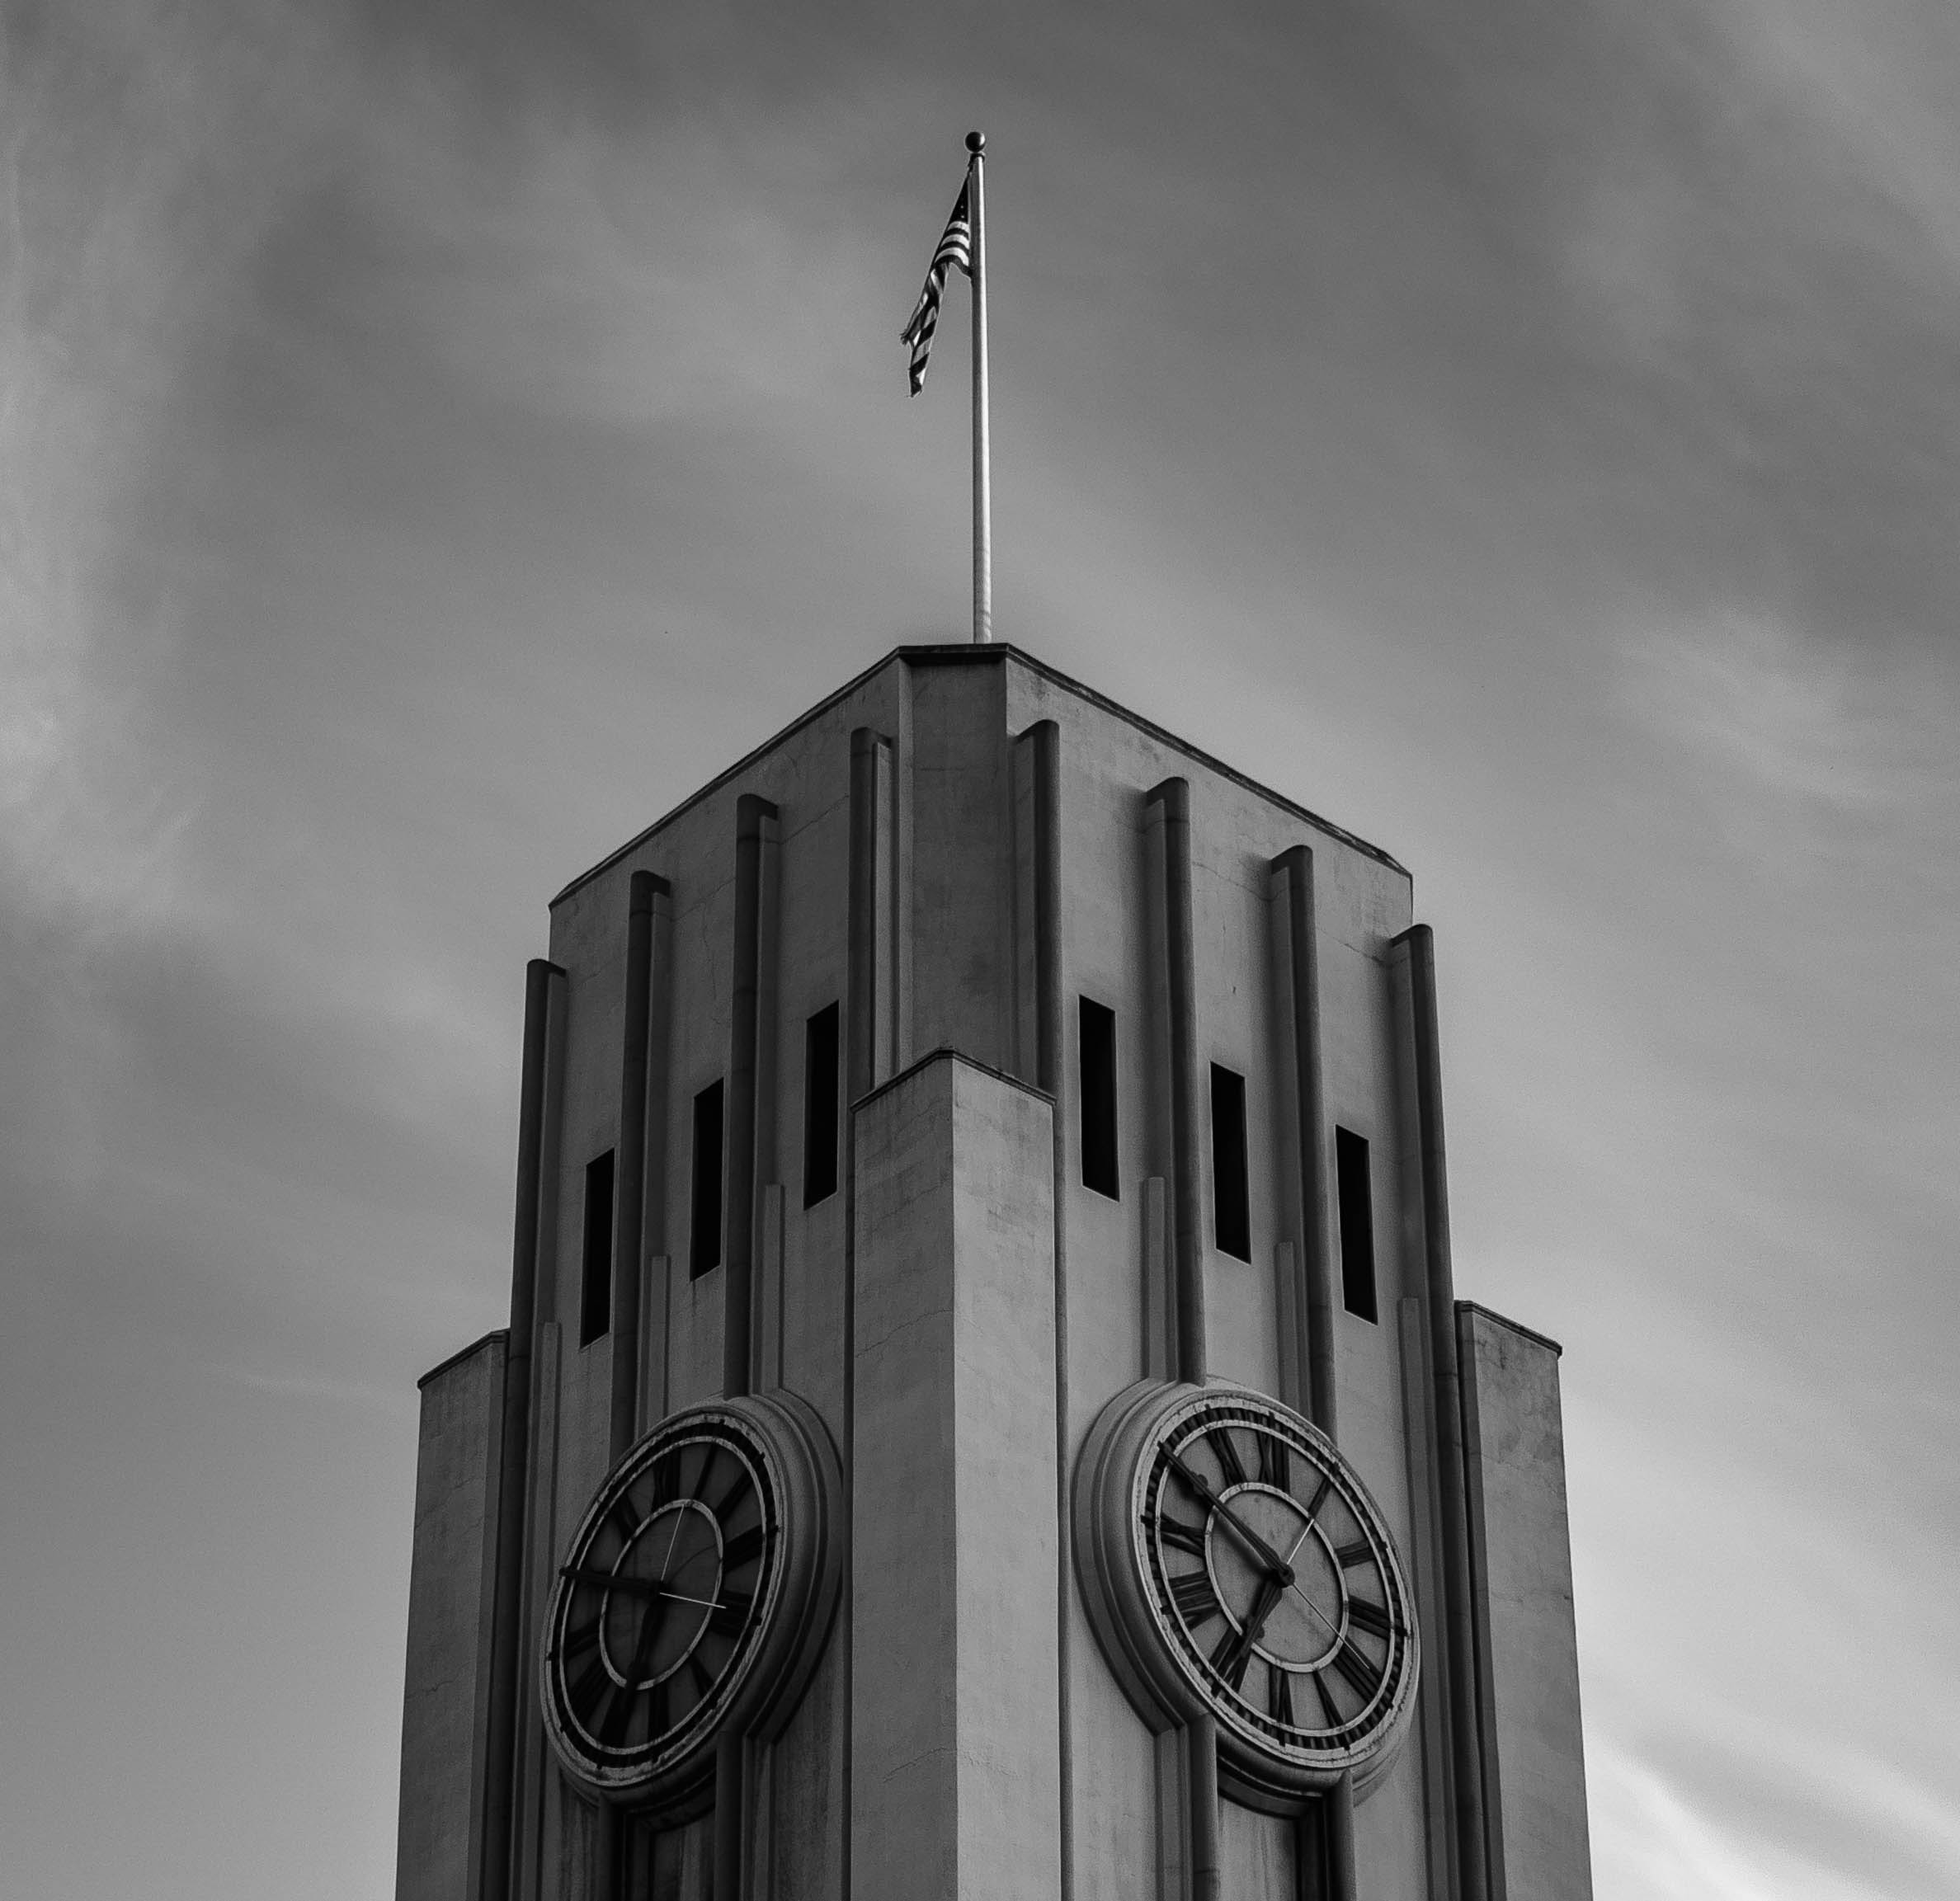 low-angle and grayscale photography of tower clock with raised flag